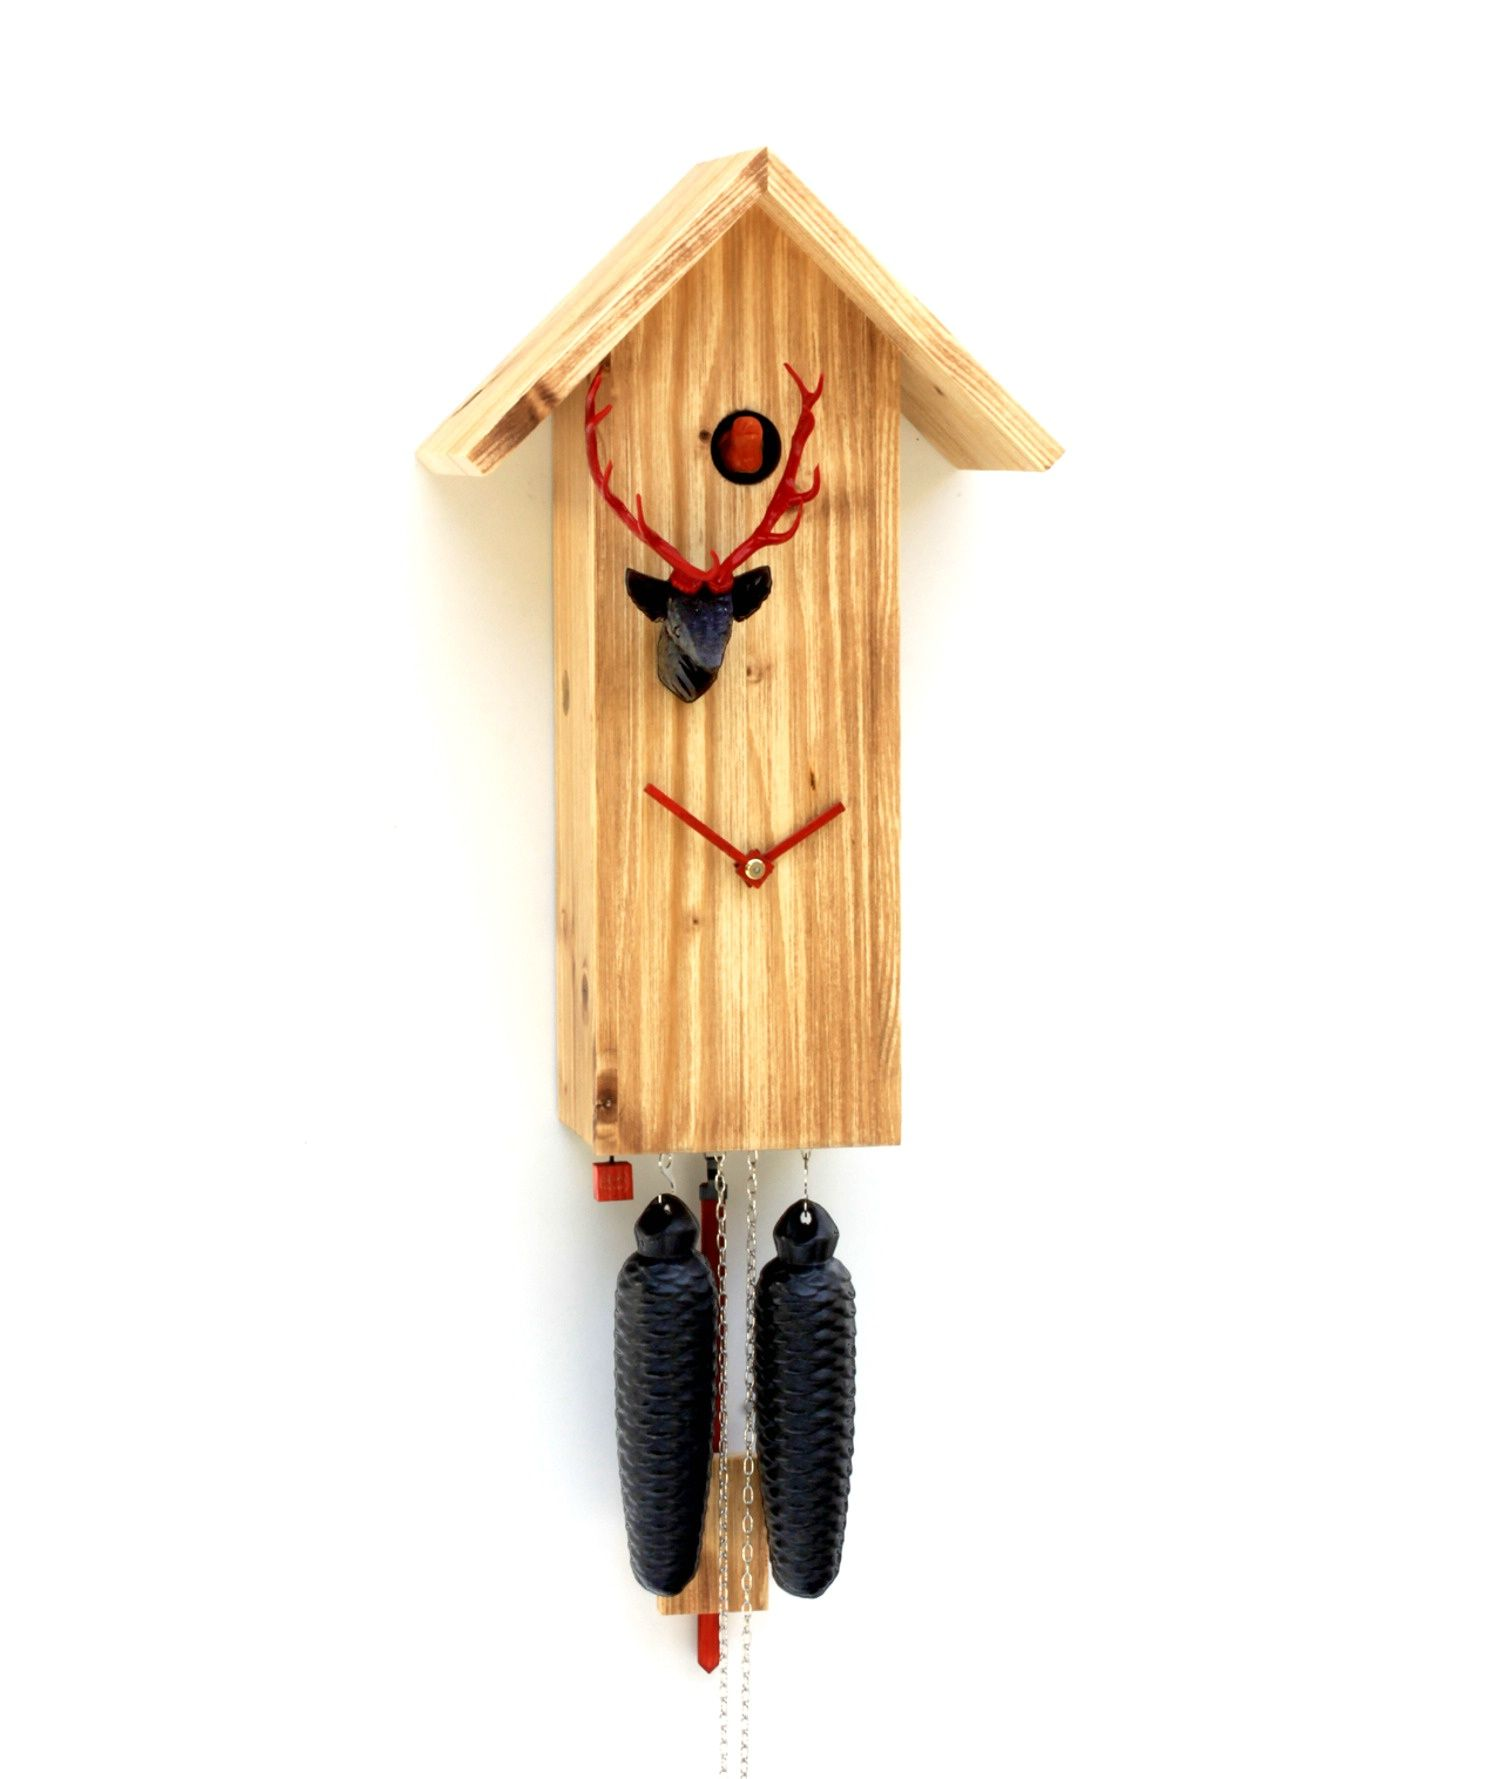 Modern cuckoo clock by ROMBA, the inventors of the cuckoo clock of ...